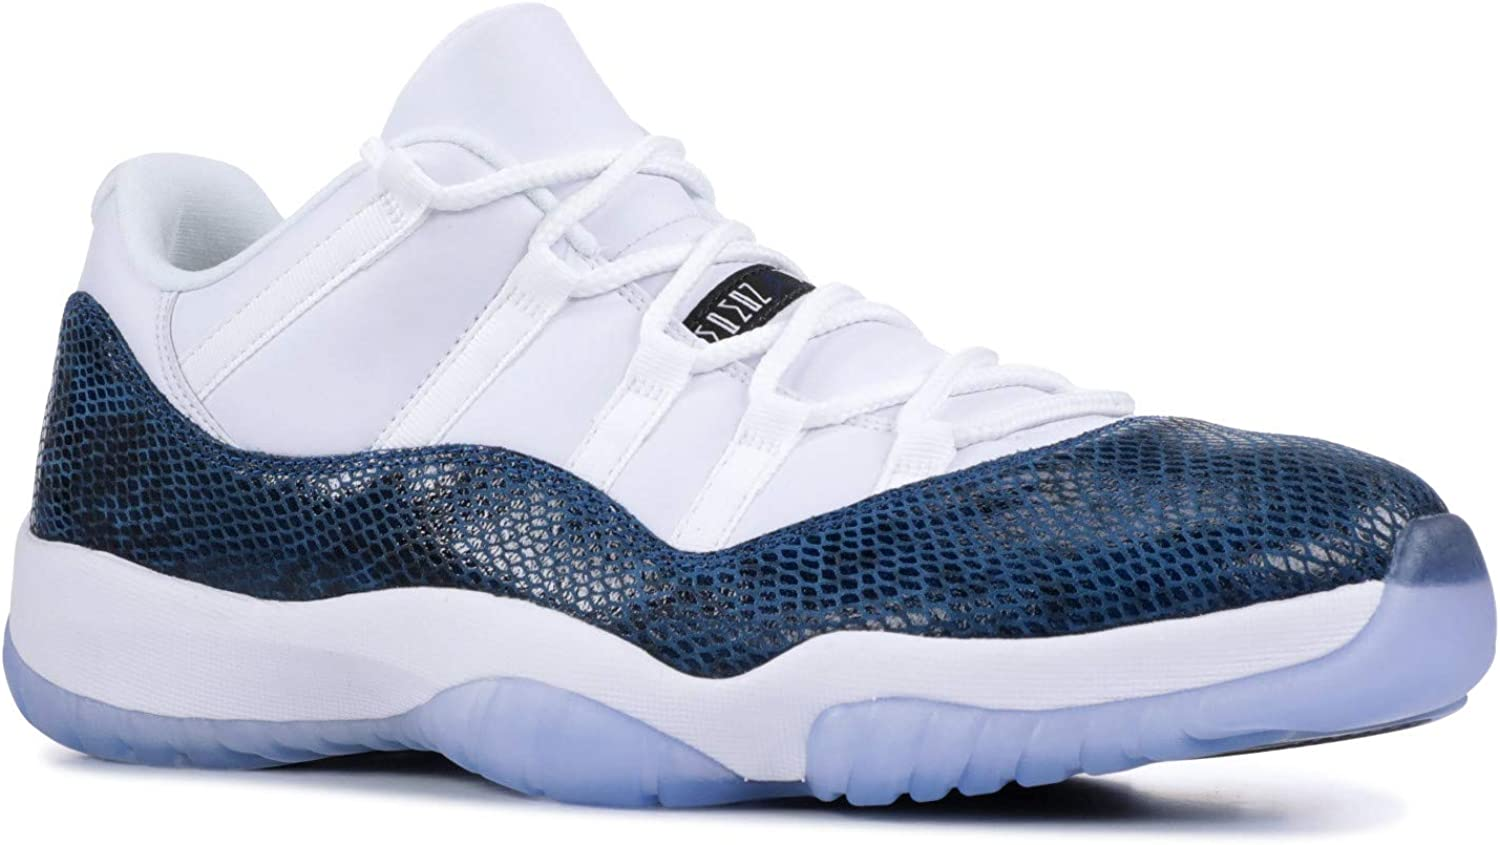 air jordan 11 retro low le